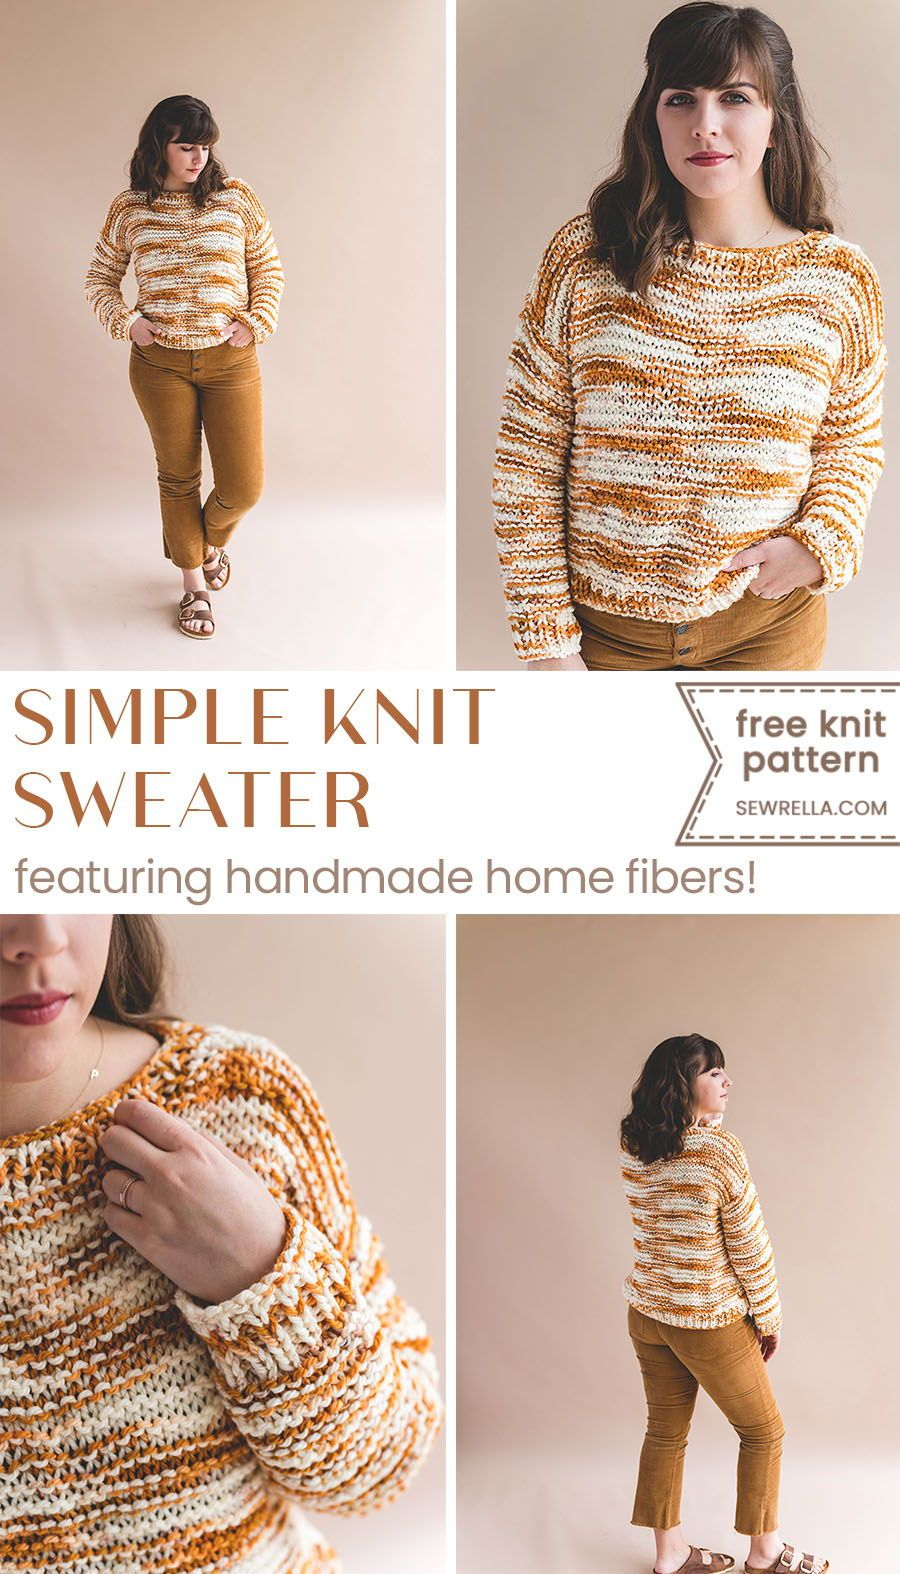 20304affc This sweater is the perfect challenge for beginner knitters! Learn the easy  basics while constructing a pretty sweater!  knit  sweater  howto  sewrella   diy ...